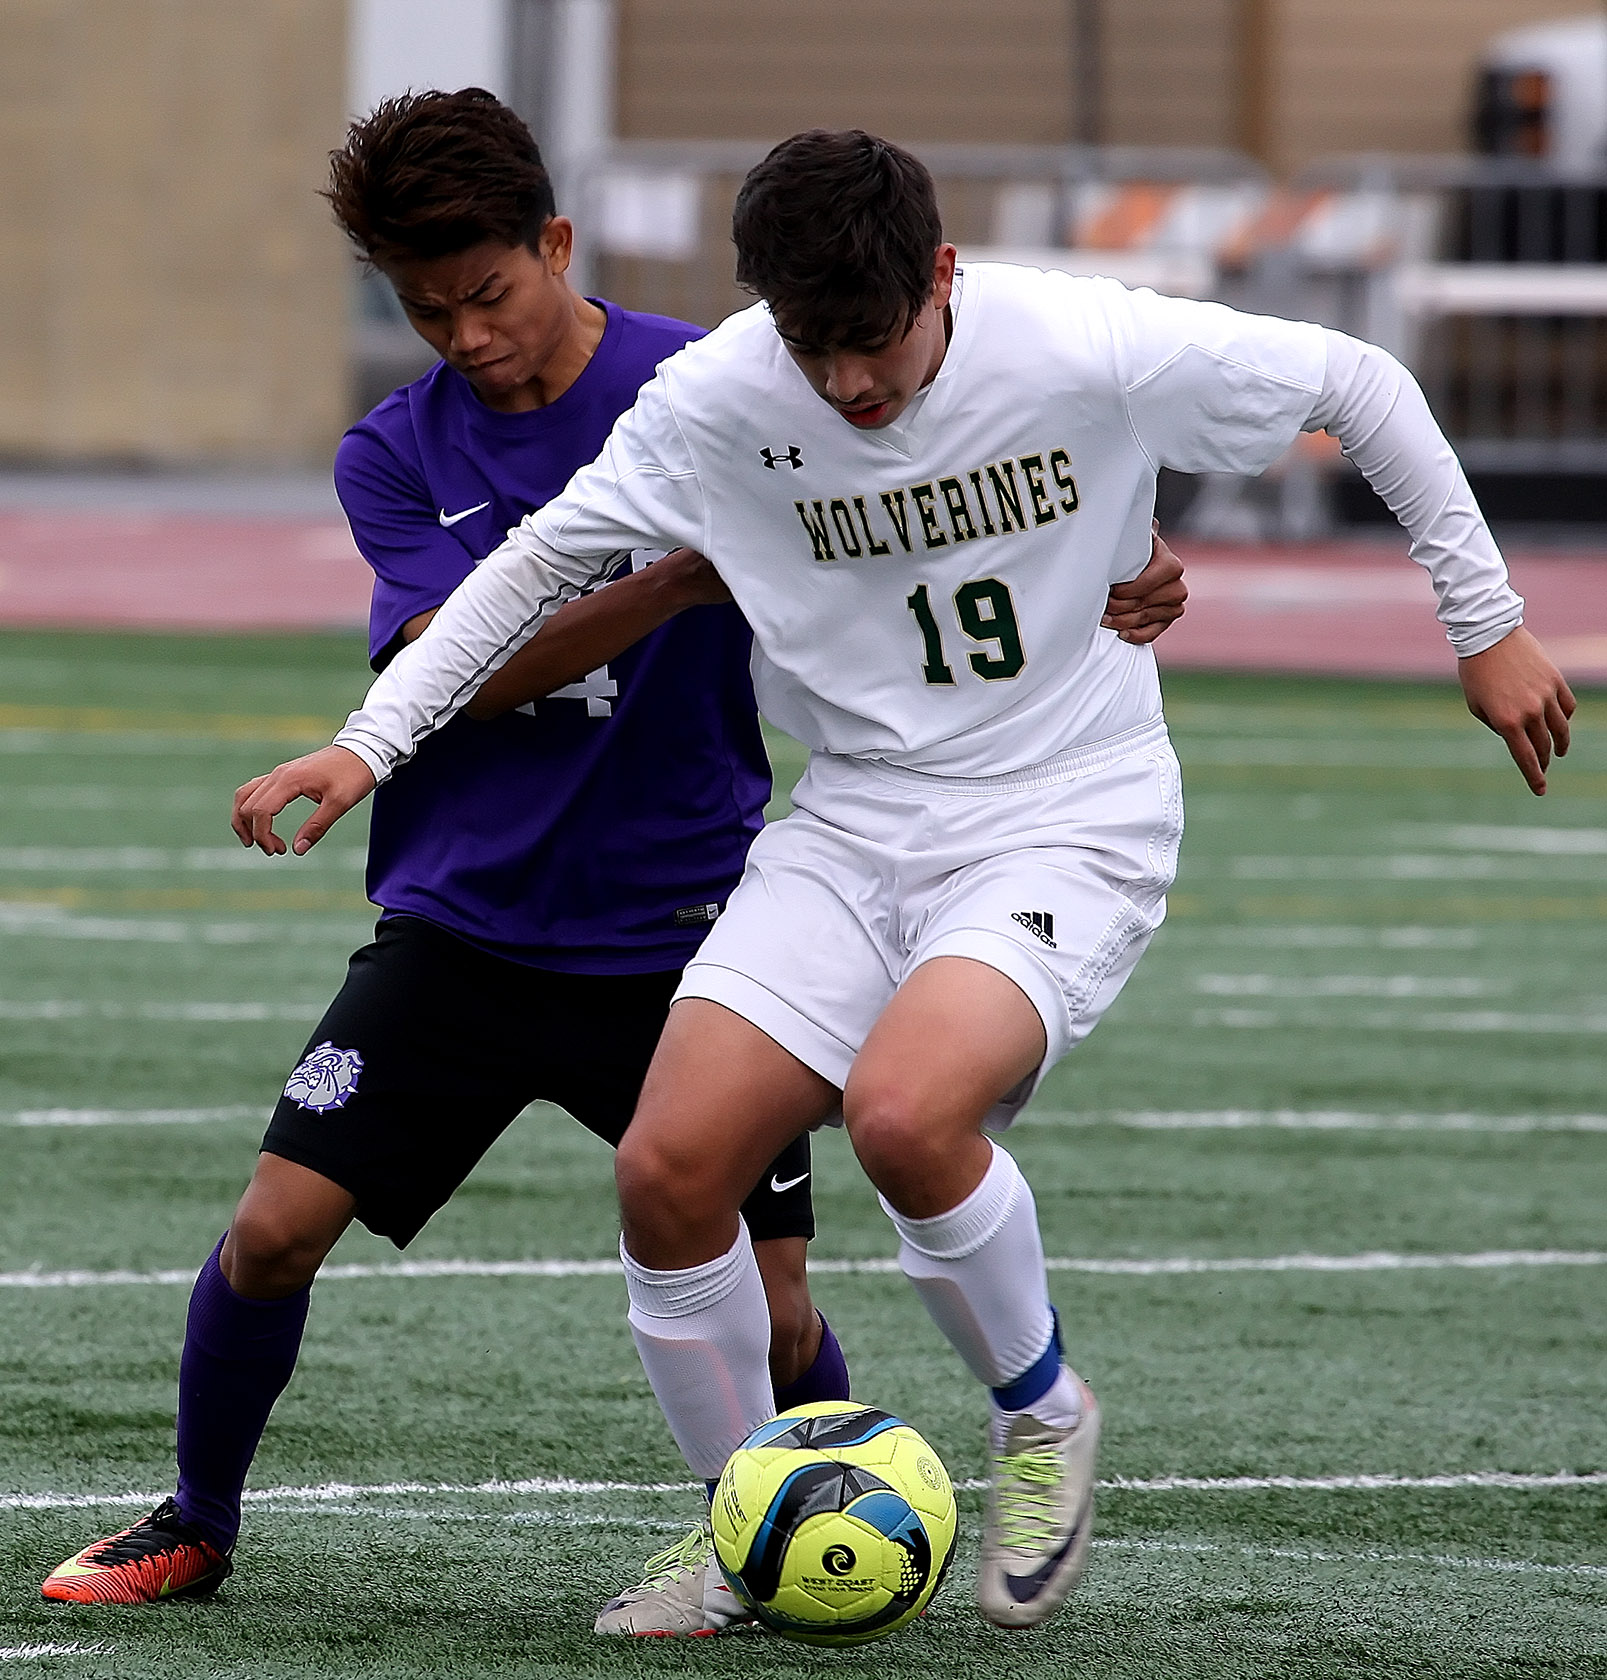 Brian Chicas of Evergreen tries to keep the ball away from Foster's Kum Hnin.